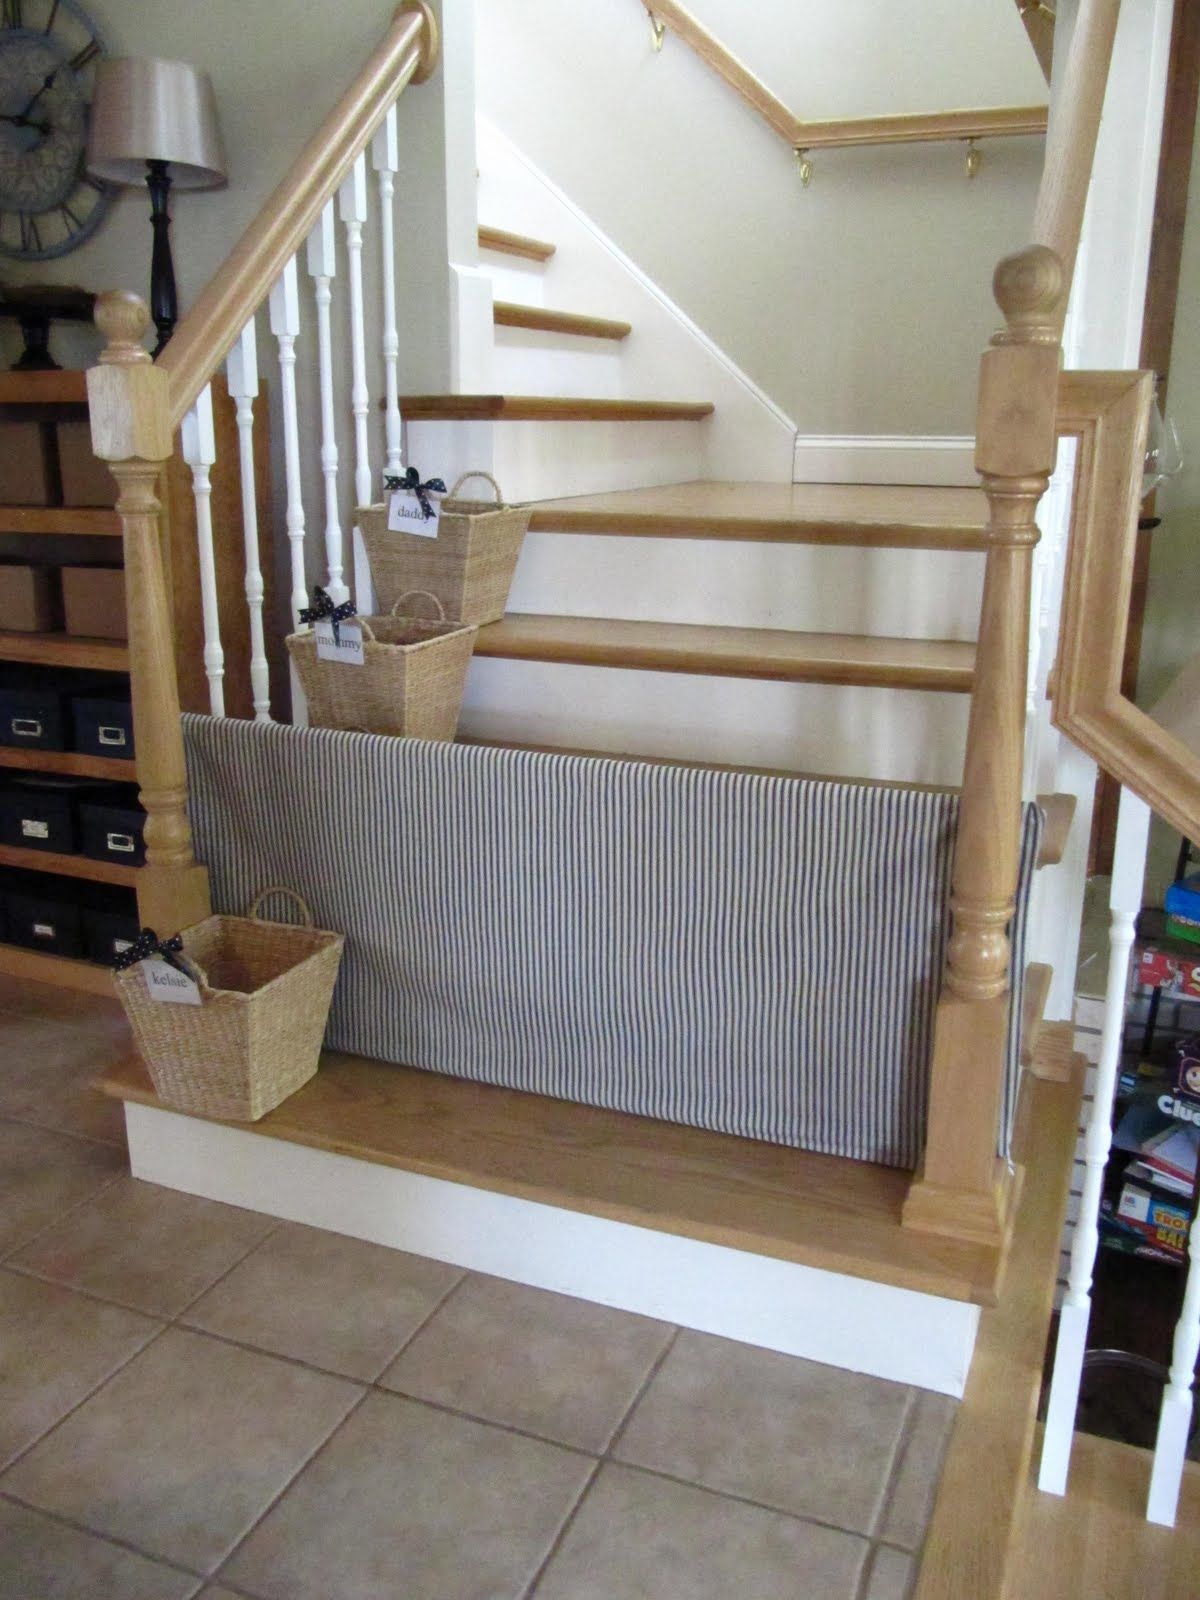 Genial PVC Gate Sew On Fabric Flaps With Velcro So That It Can Be Secured Around  The Spindles. Nh